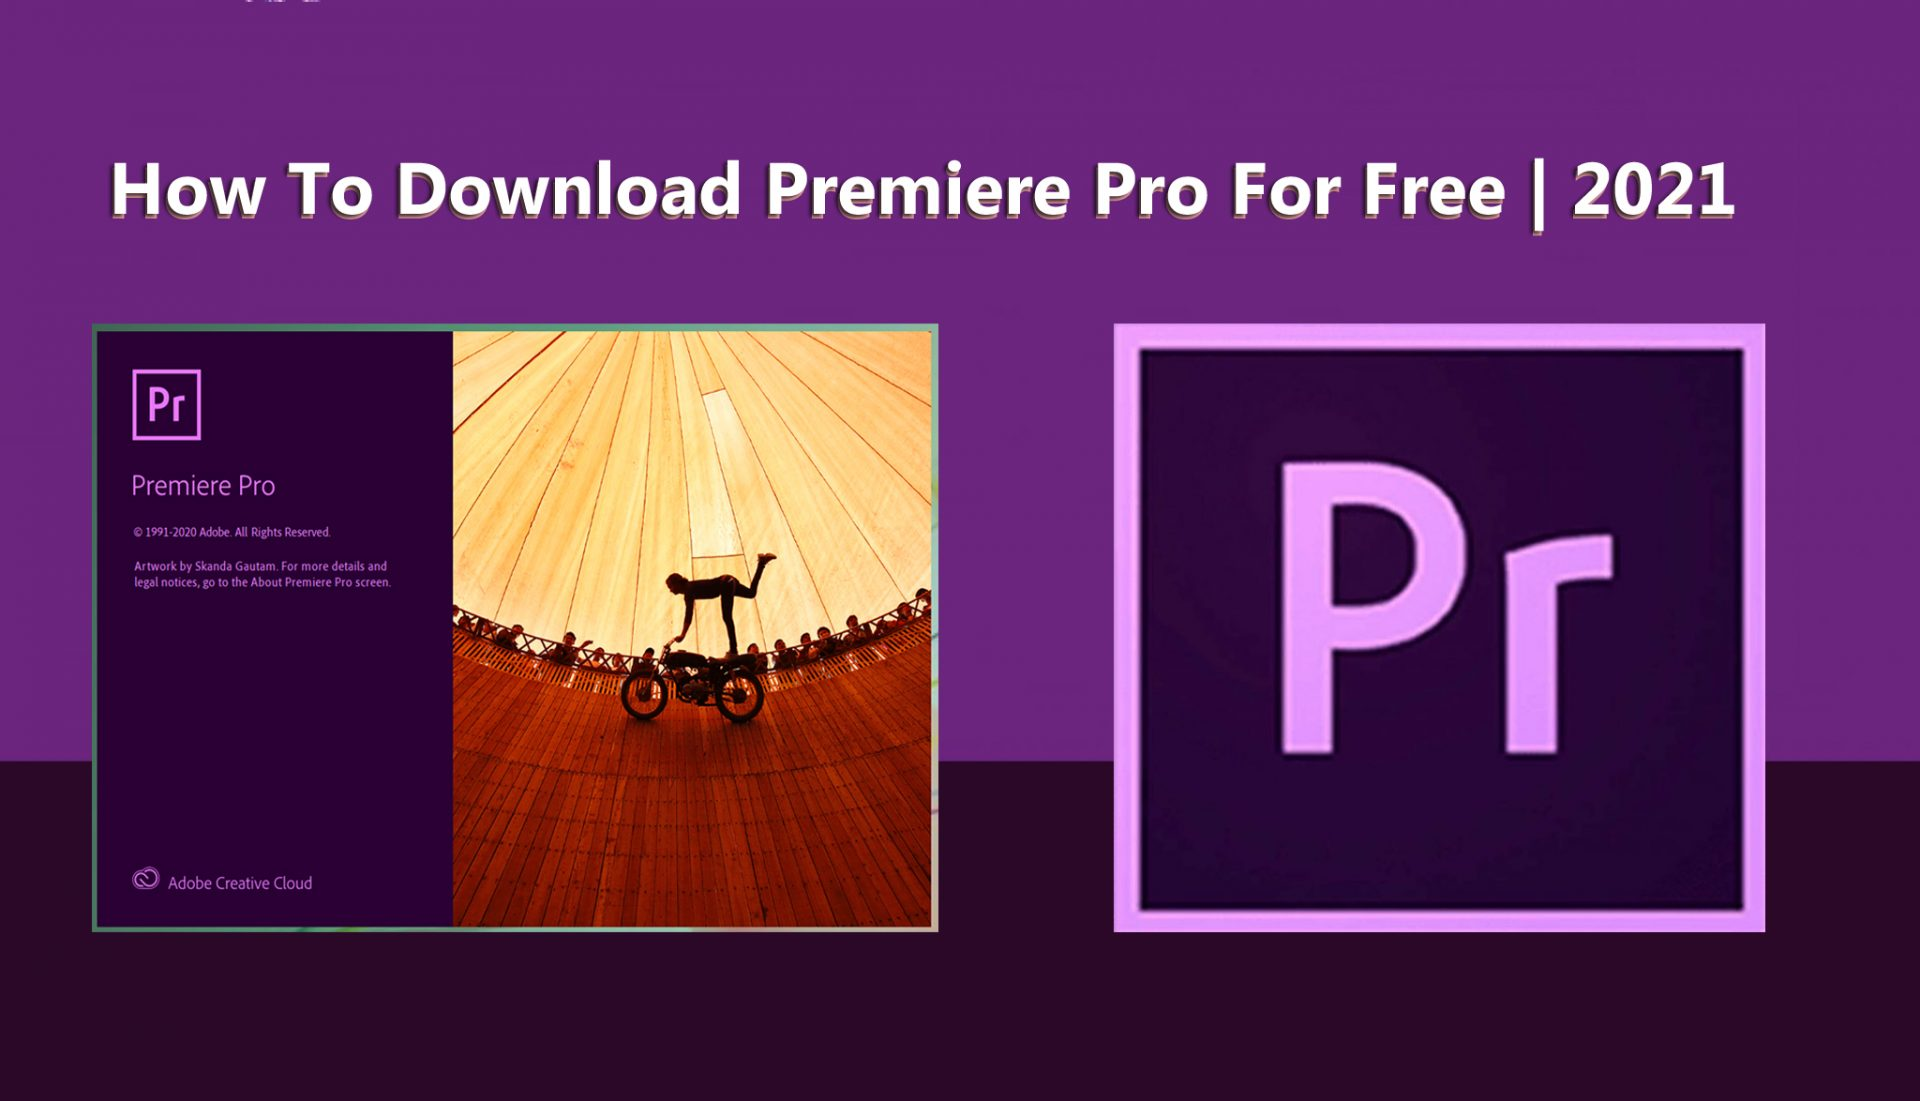 How To Download Premiere Pro For Free | 2021 Updated!